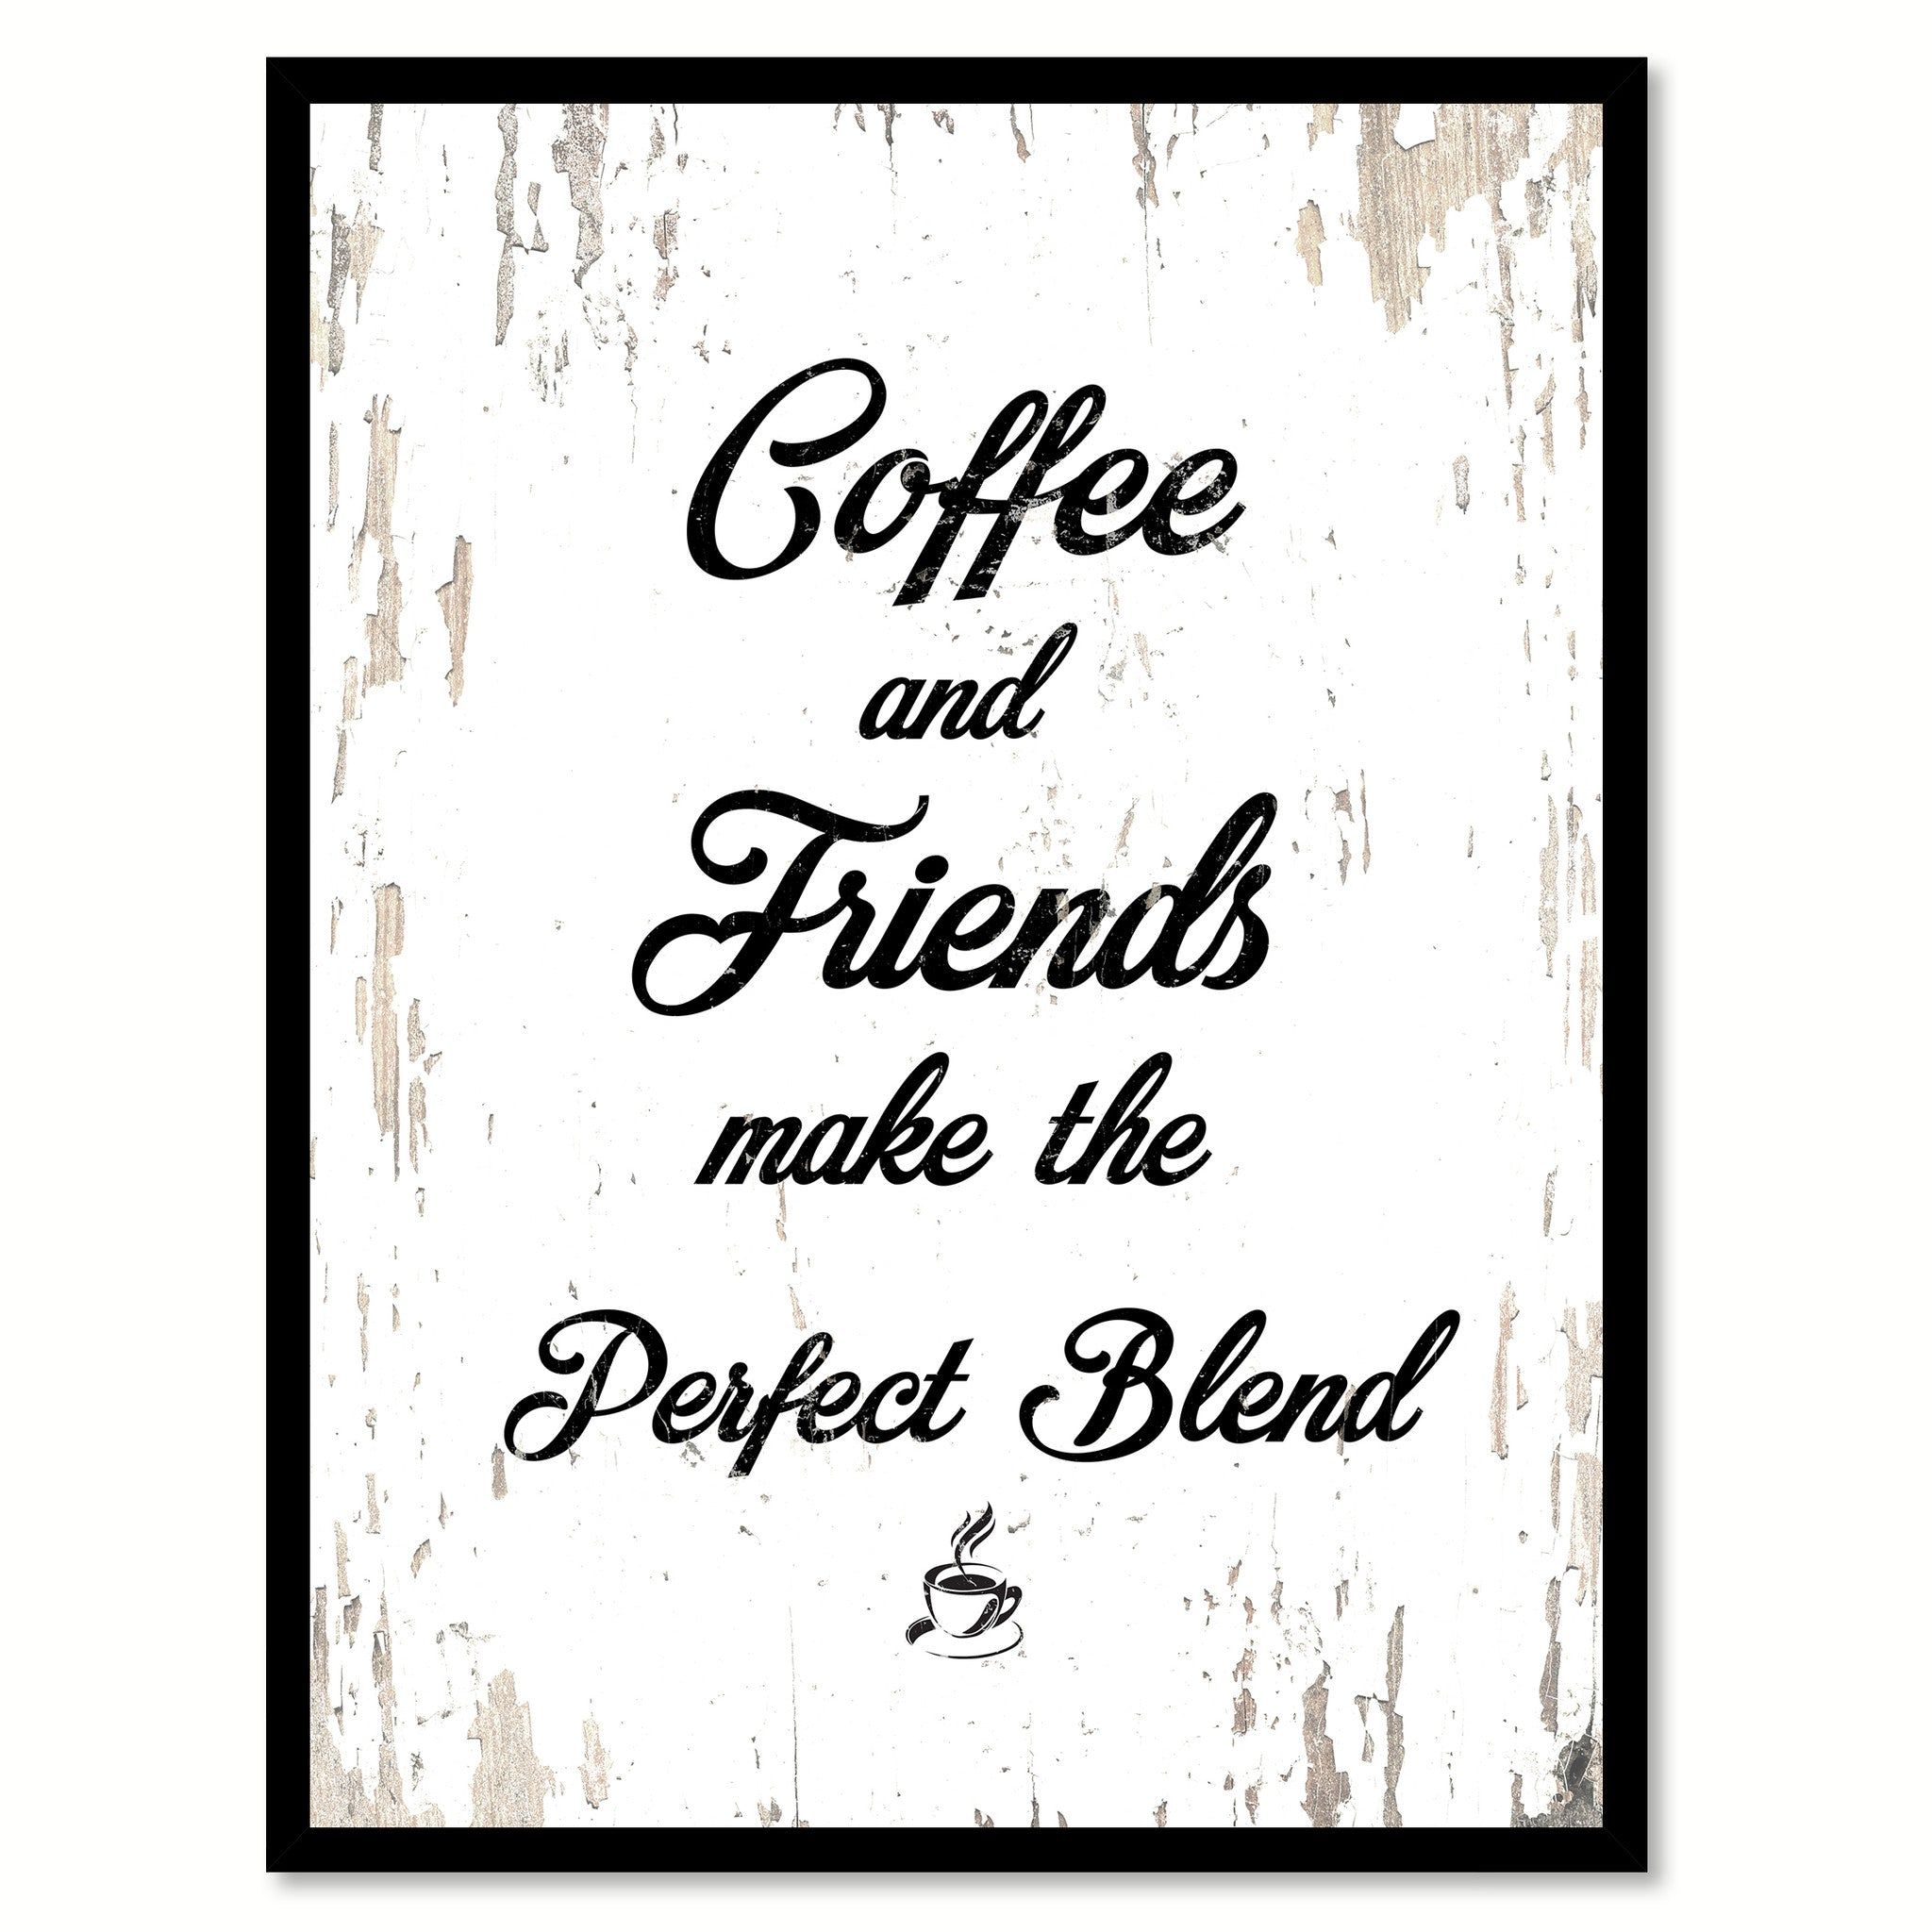 Perfect Quotes About Coffee And Friendship New Coffee U0026 Friends Make The Perfect  Blend Coffee Wine Saying